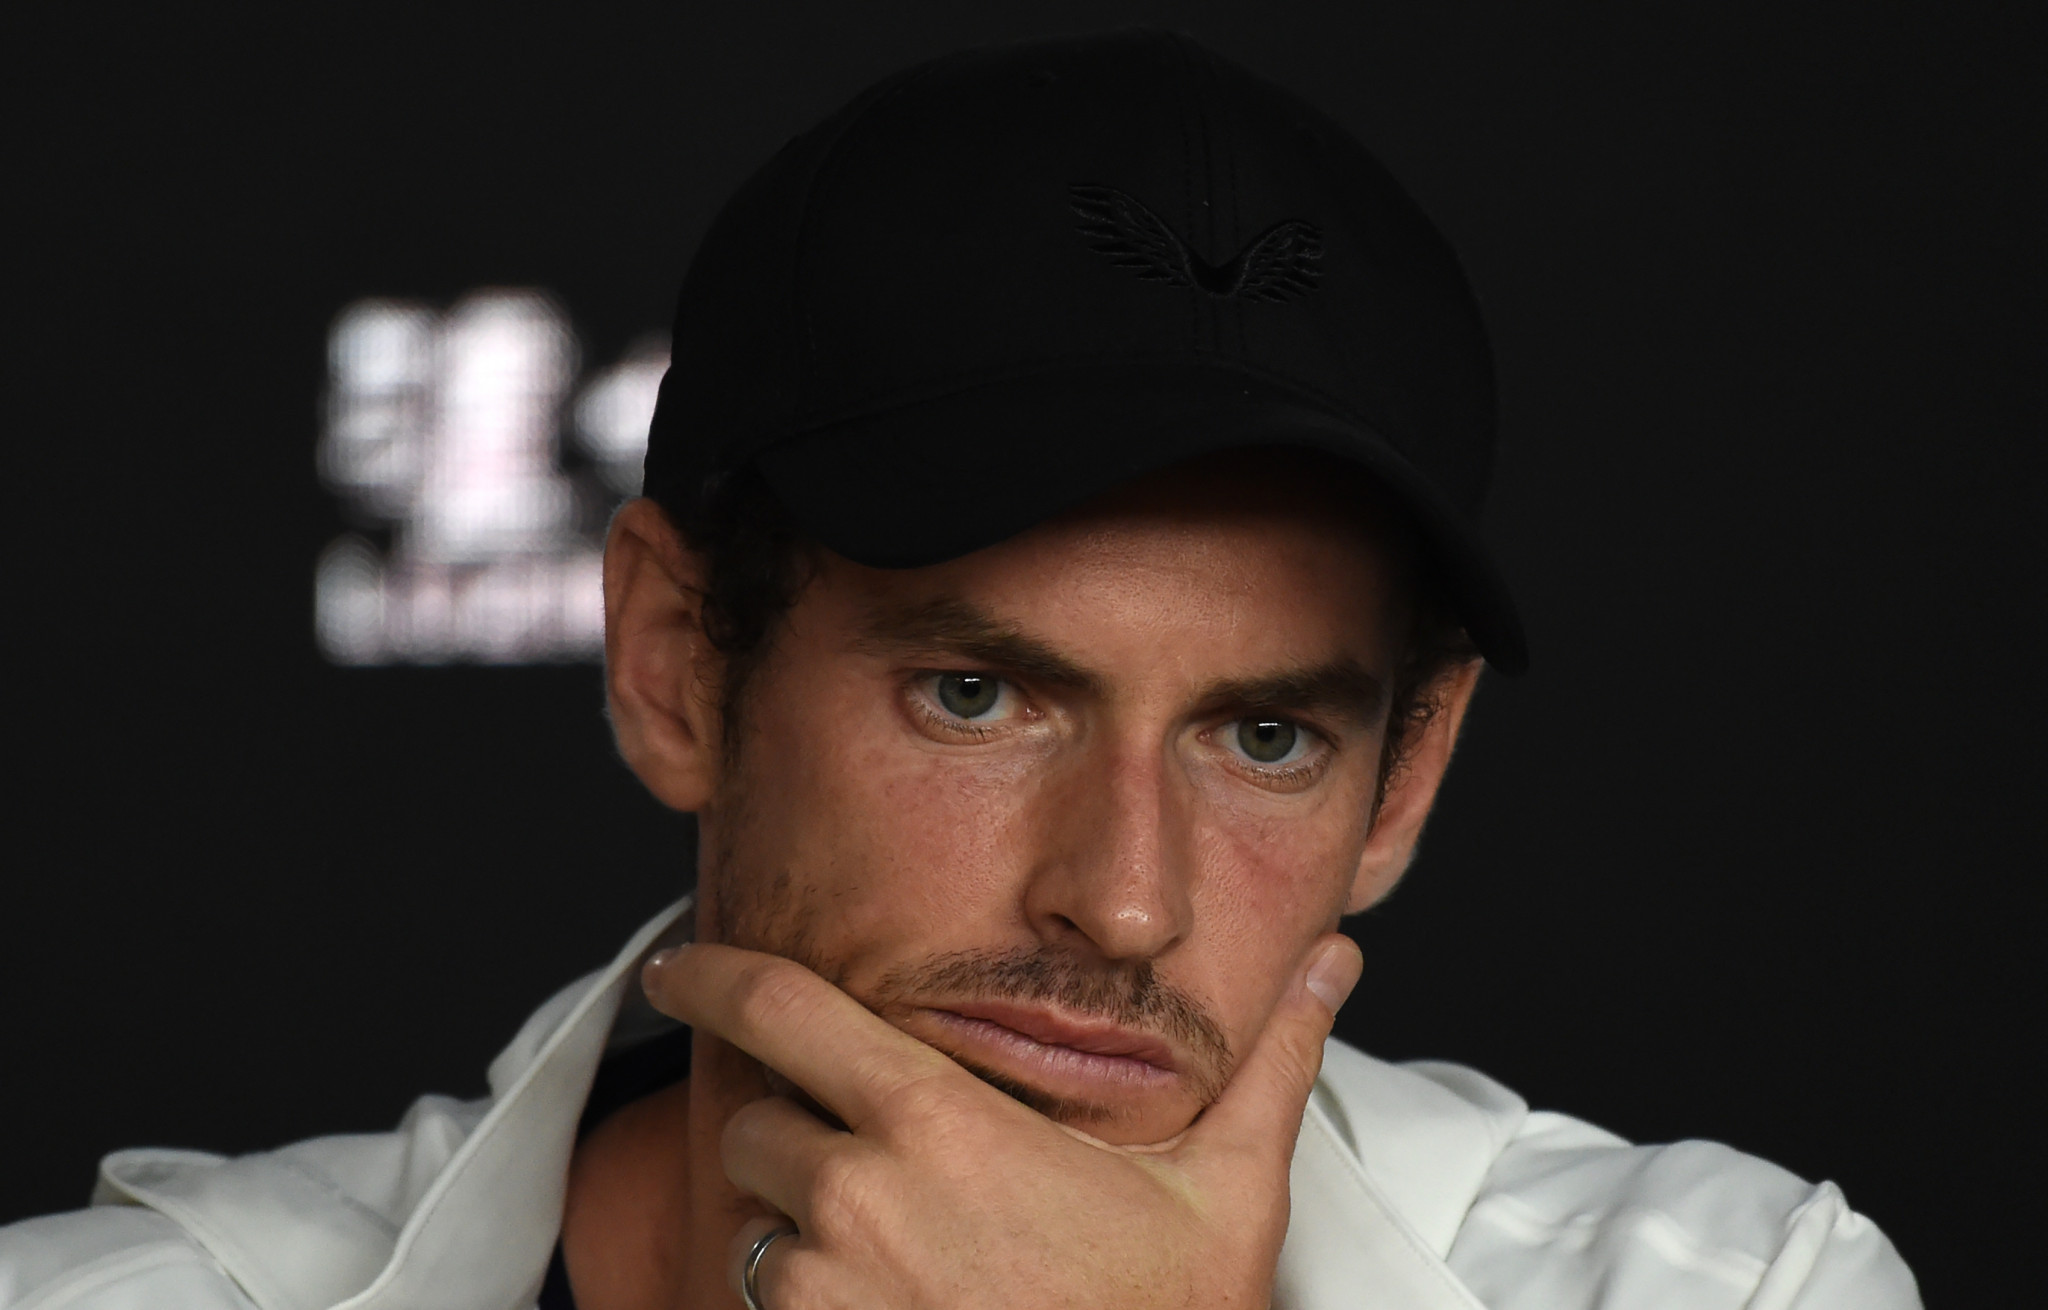 Britain's three-time Grand Slam champion Sir Andy Murray had previously suggested hip problems could have forced him to retire after the Australian Open in January ©Getty Images